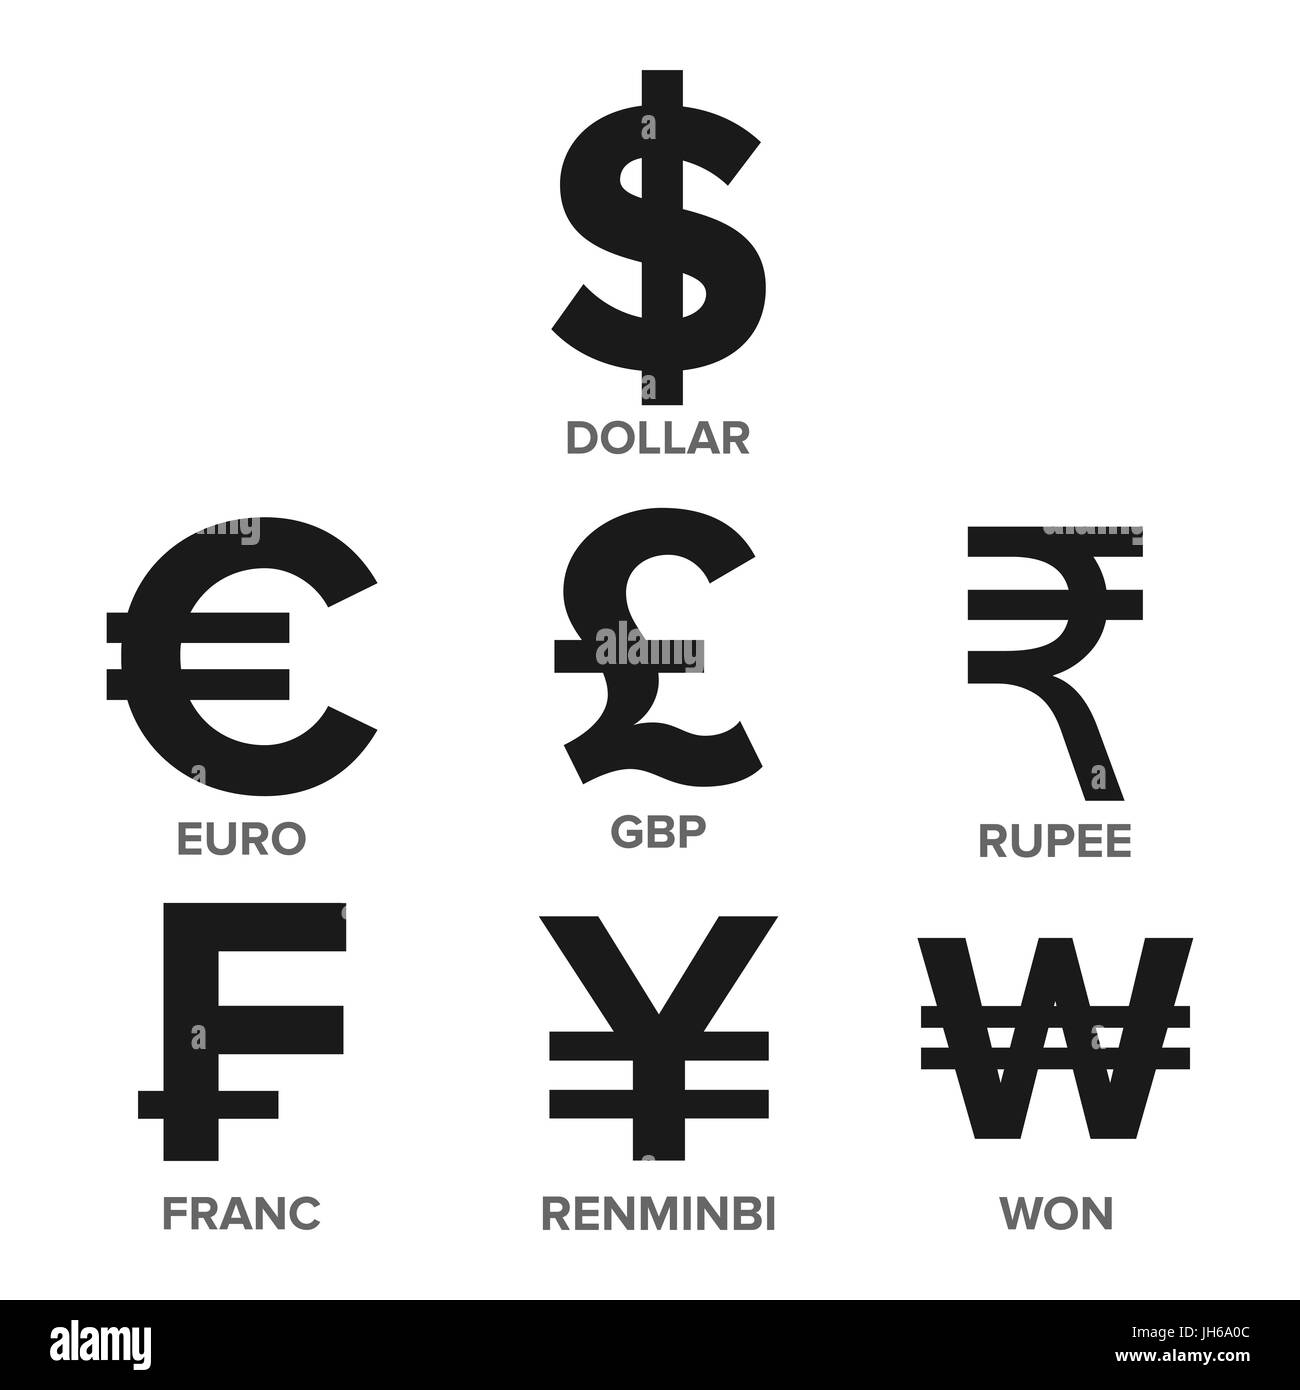 Currency icon set vector money famous world currency finance currency icon set vector money famous world currency finance illustration dollar euro gbp rupee franc renminbi yuan won isolated biocorpaavc Gallery